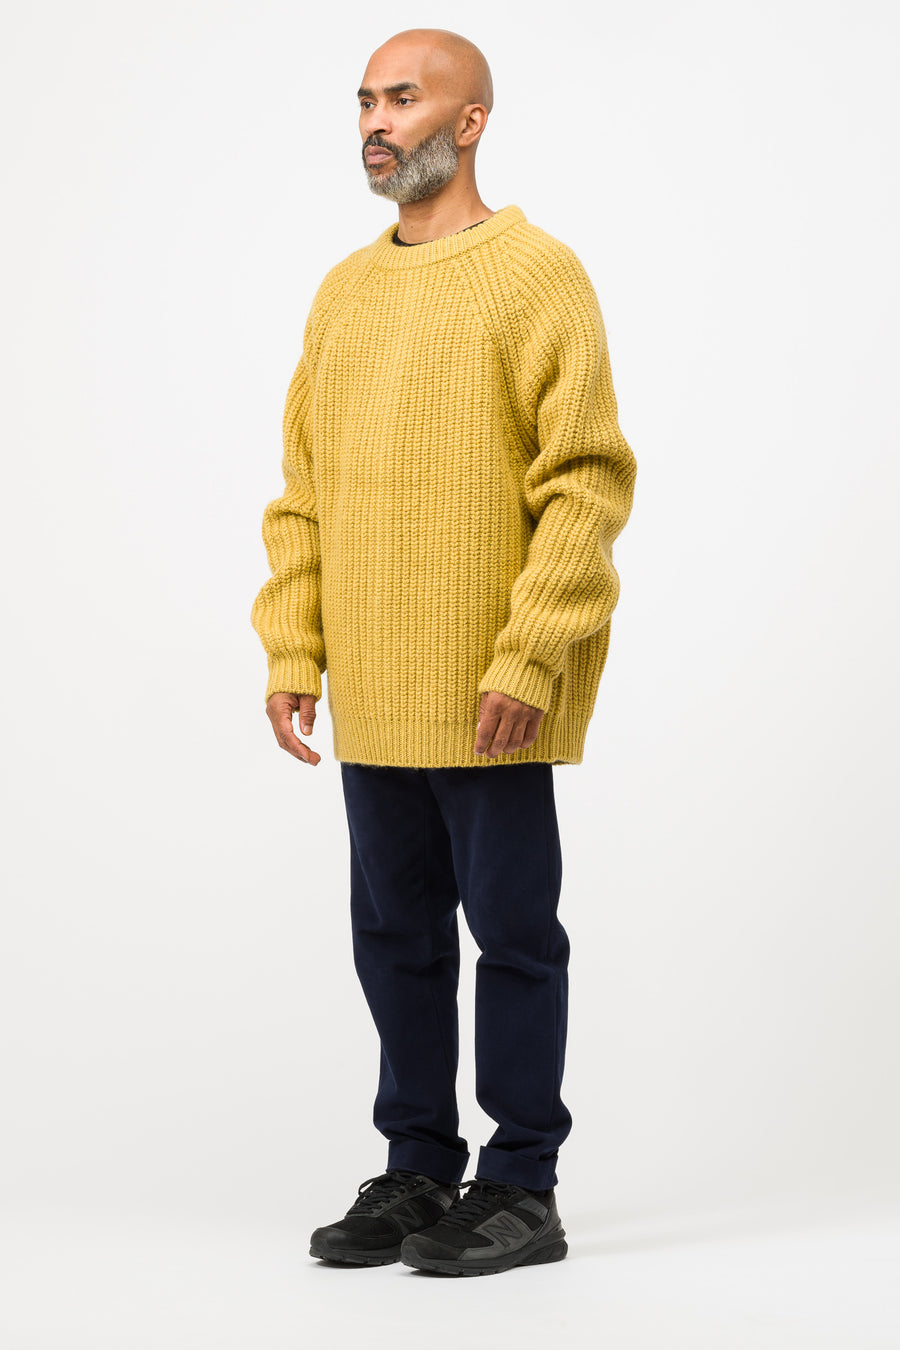 Marni Roundneck Sweater in Yellow - Notre